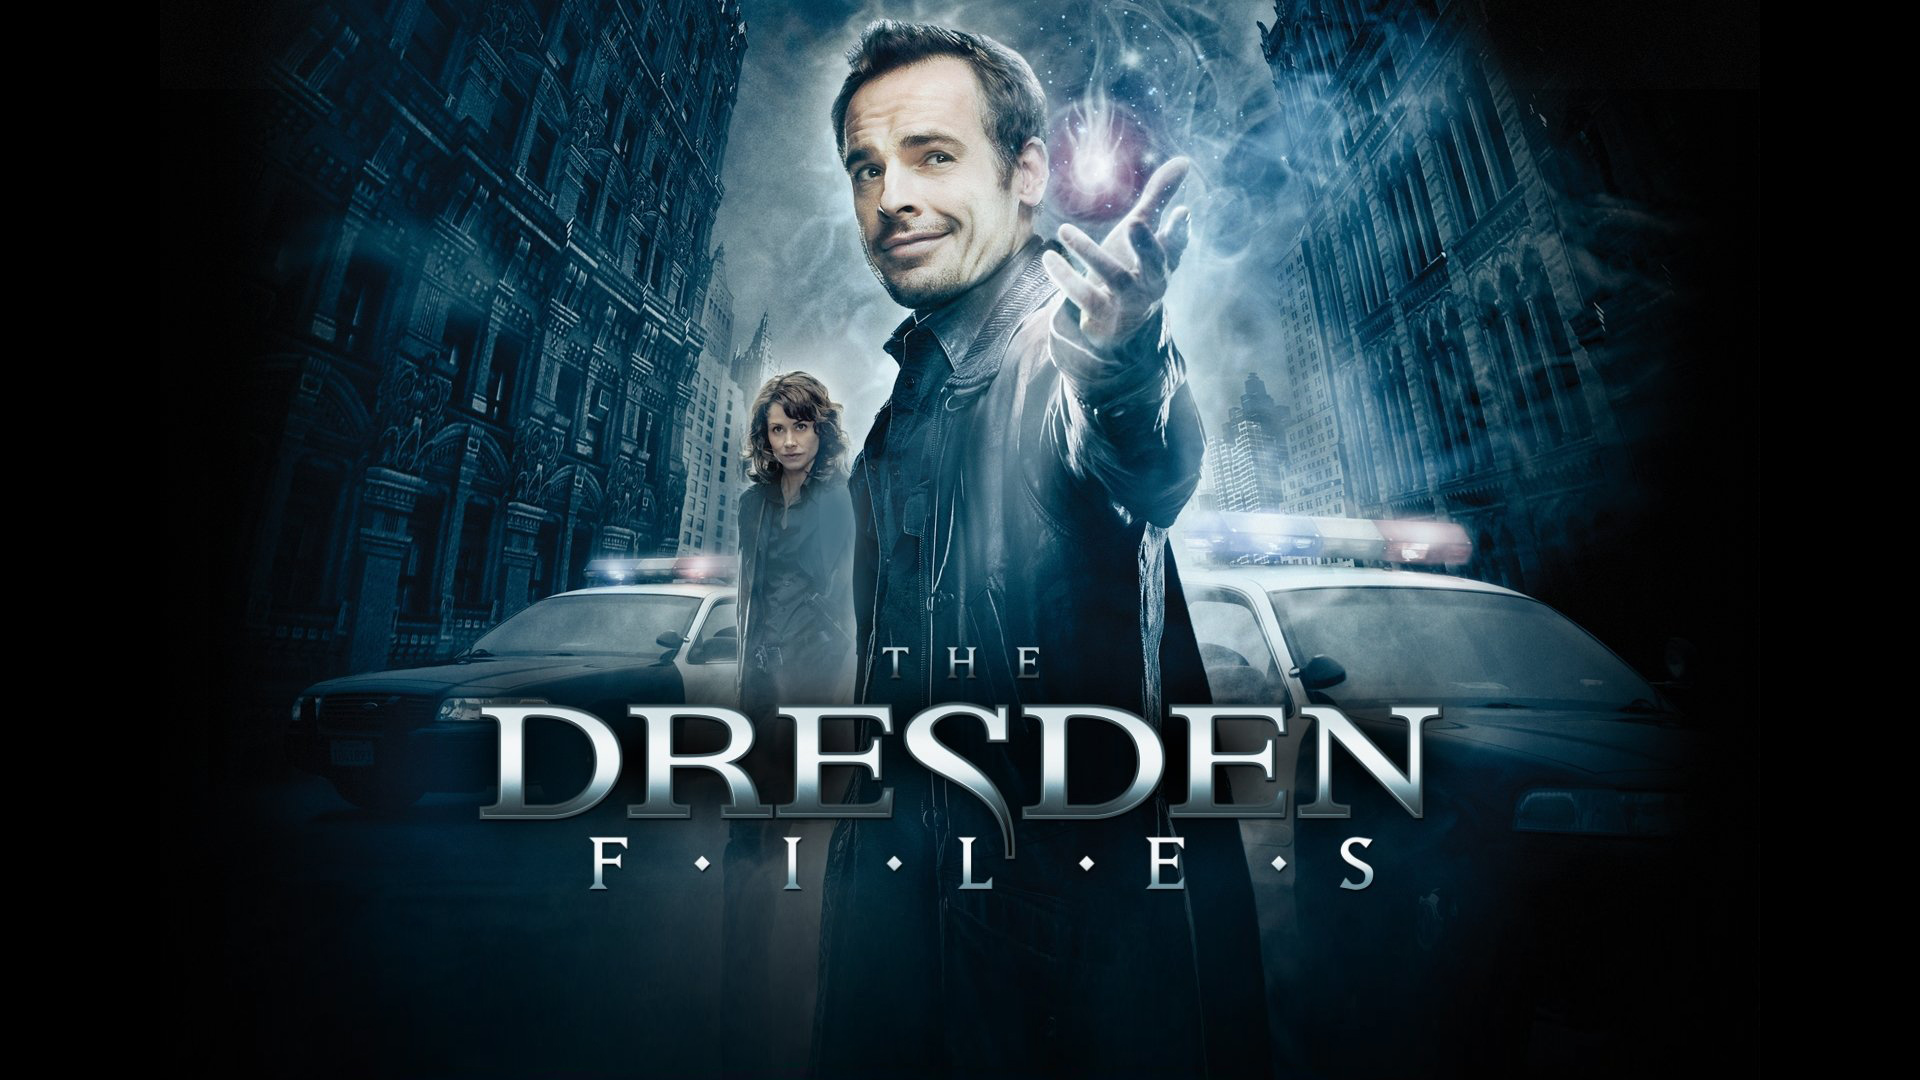 The Dresden Files Season 1